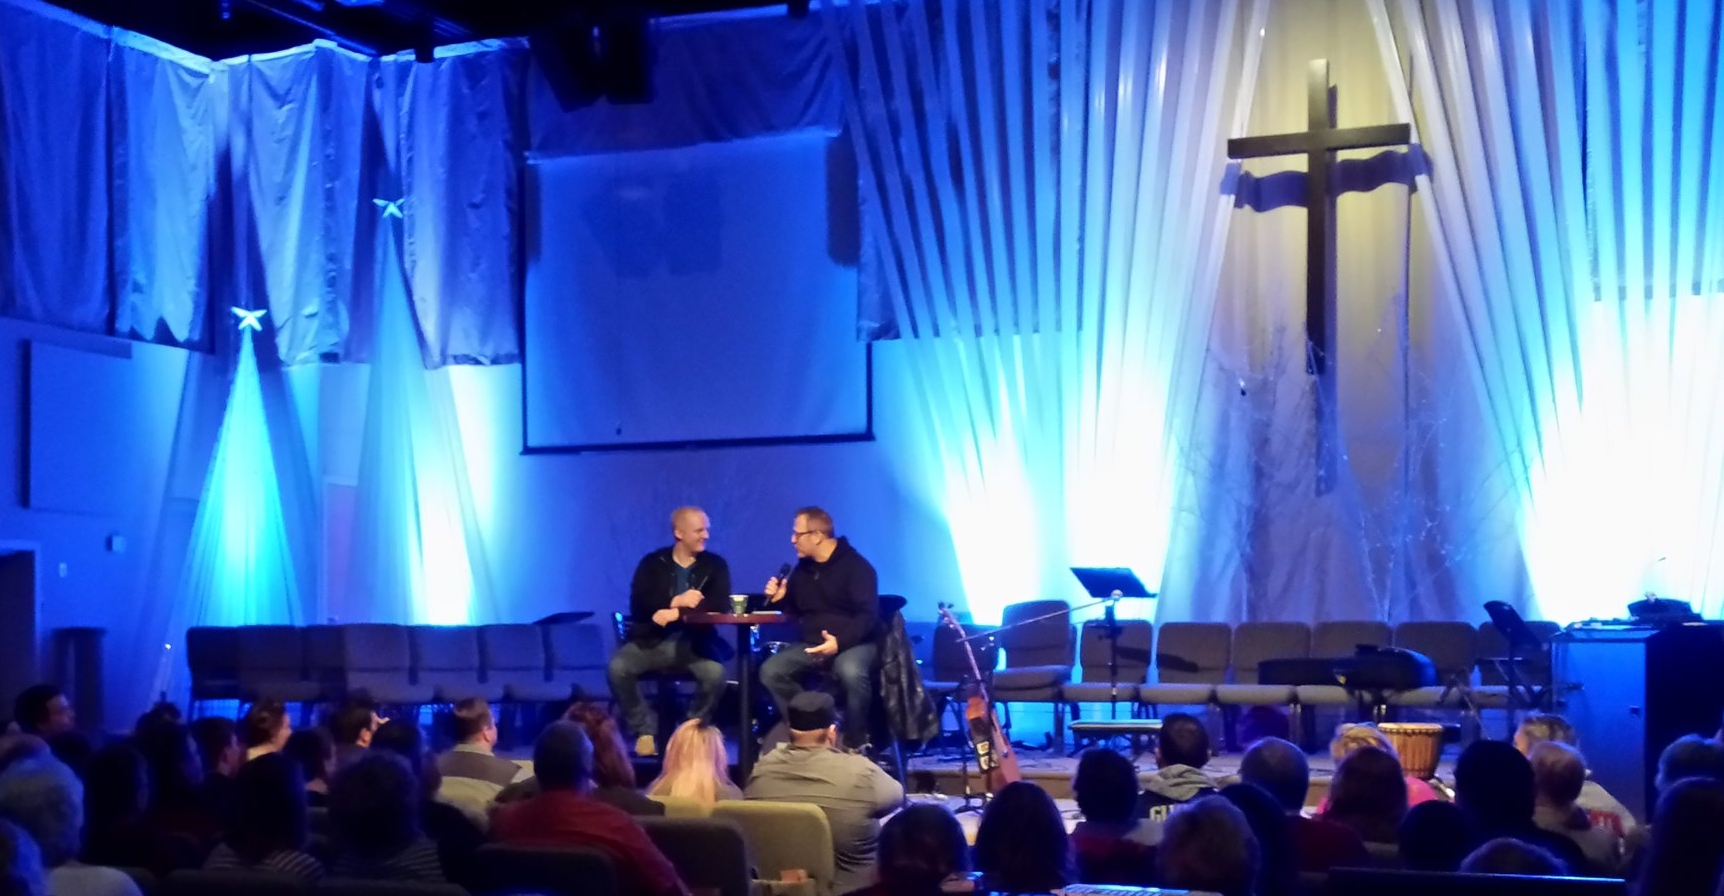 Paul Colman being interviewed by Dan Elliott at the start of the concert on Sunday.